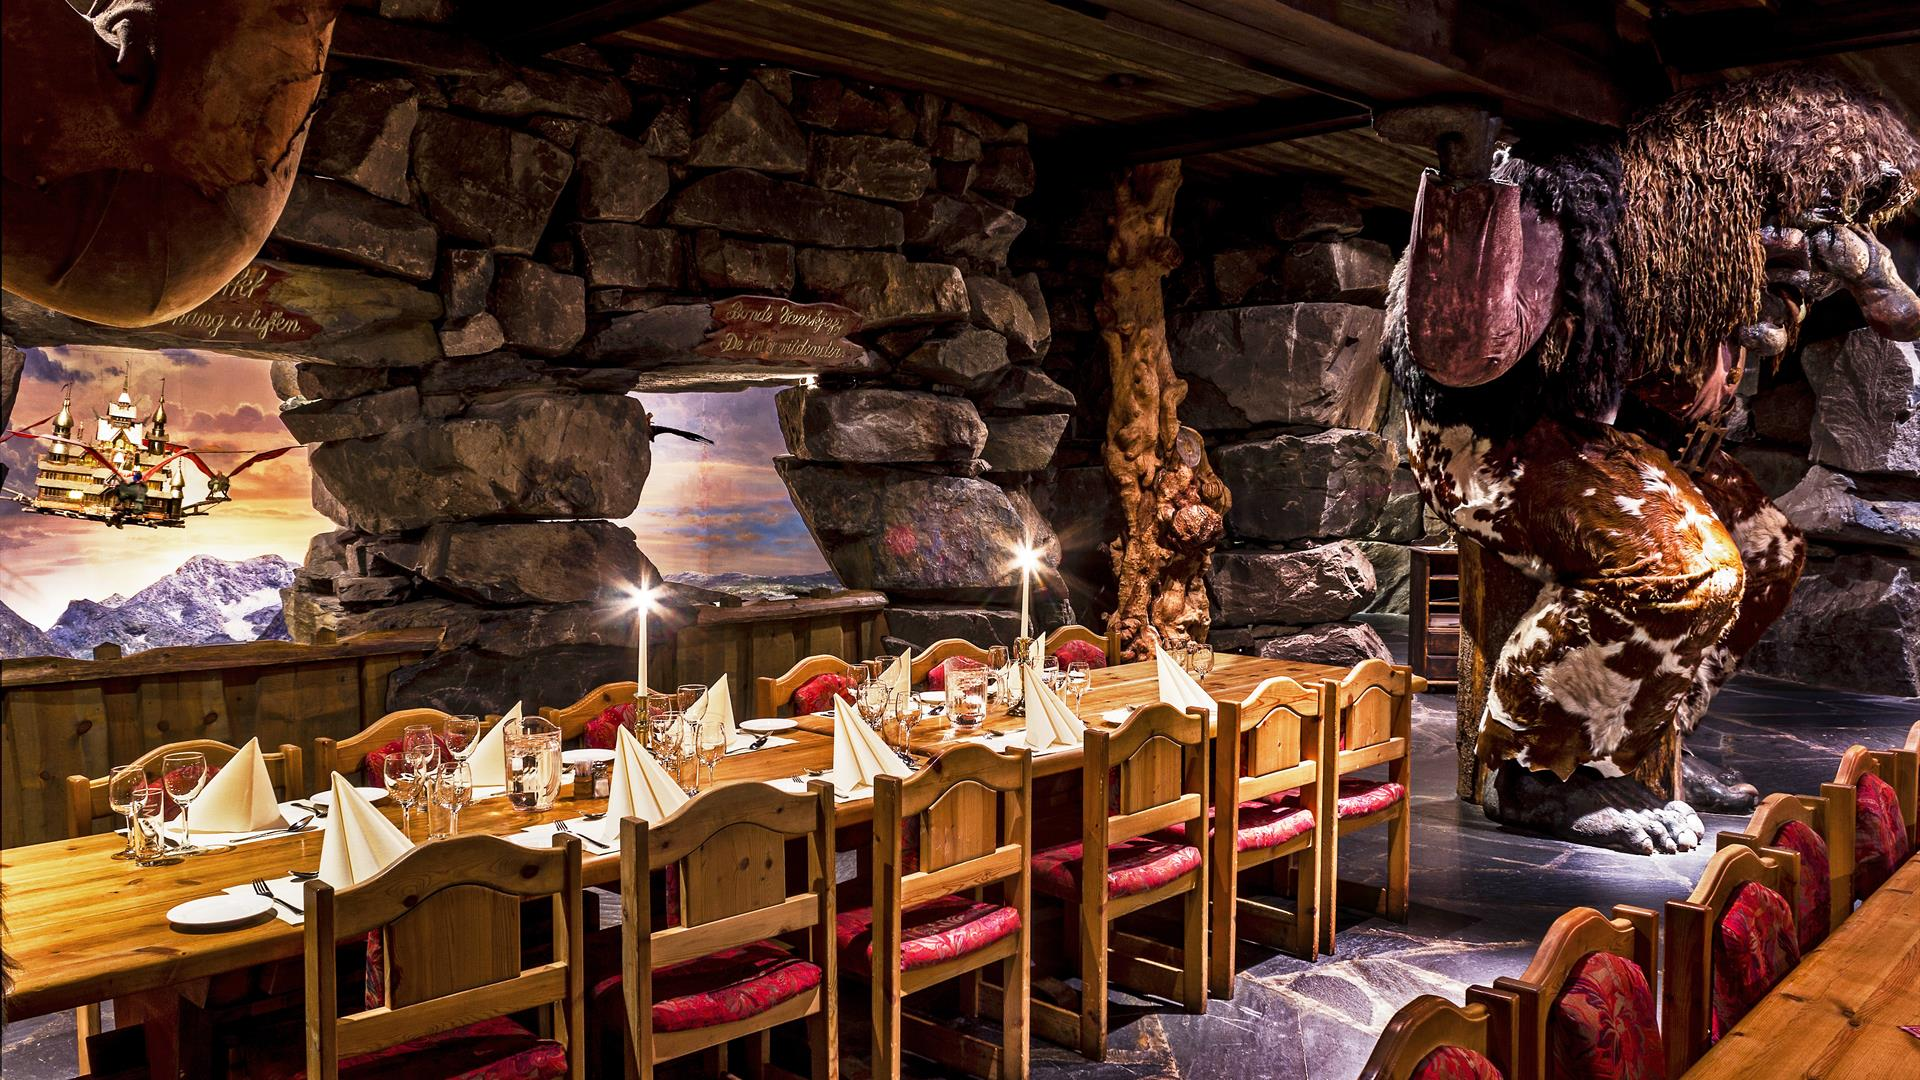 Dining tables at Trollsalen Restaurant at Hunderfossen Eventyrpark where the trolls are holding the celling up on their shoulders